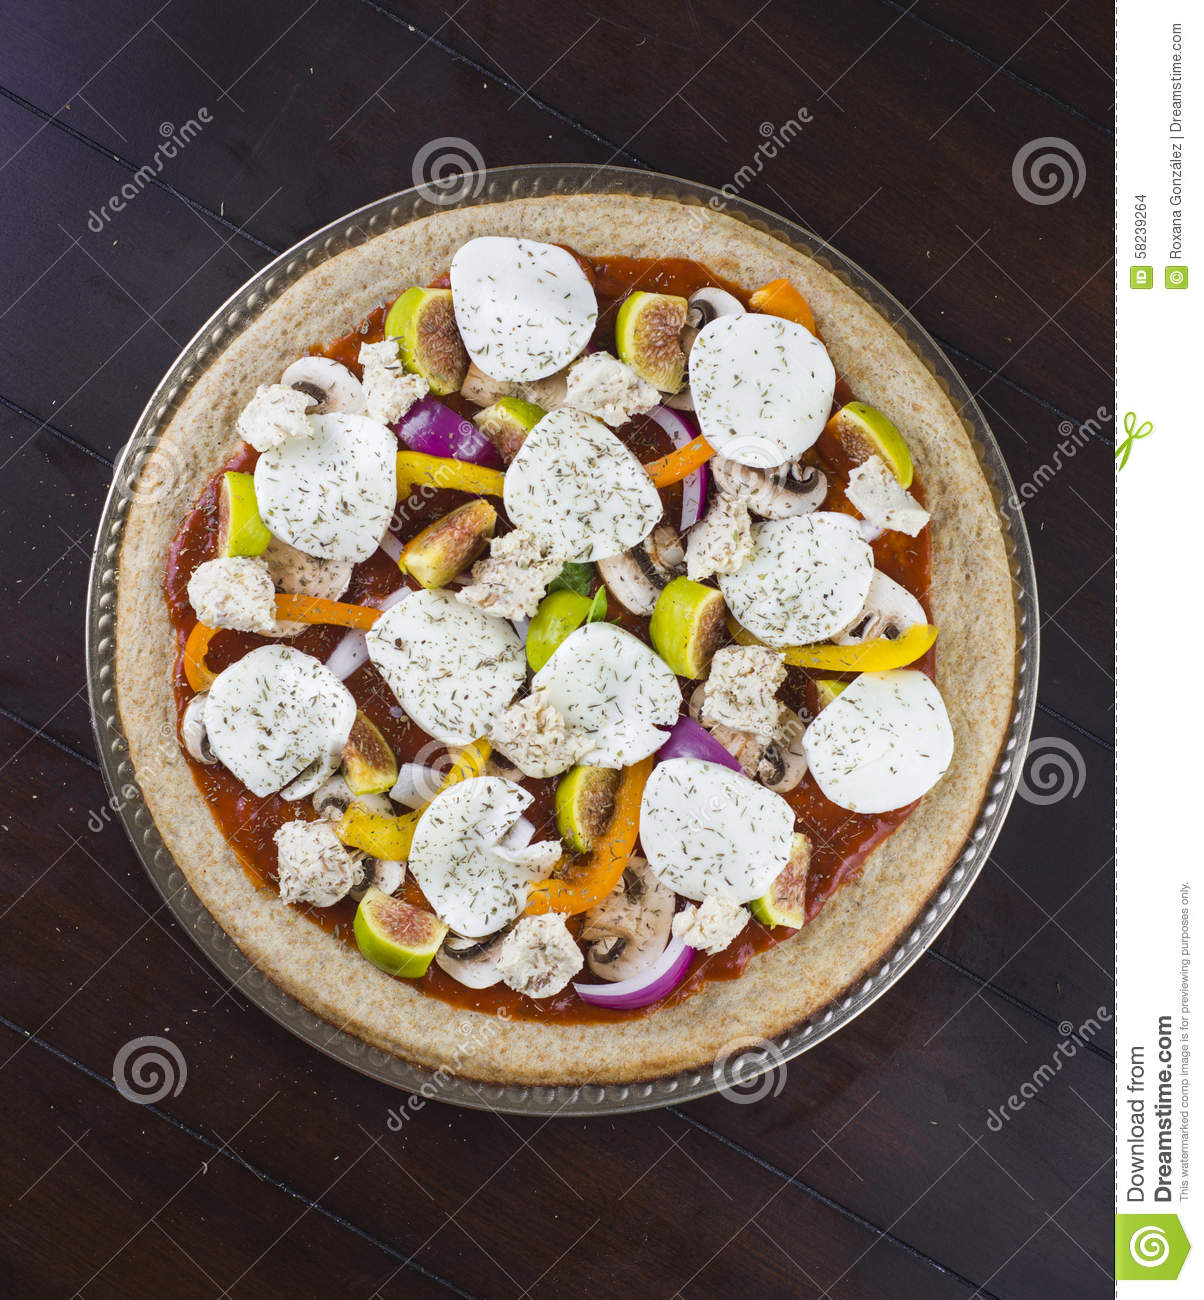 Fresh Veggie Pizza Toppings Stock Photo - Image: 58239264